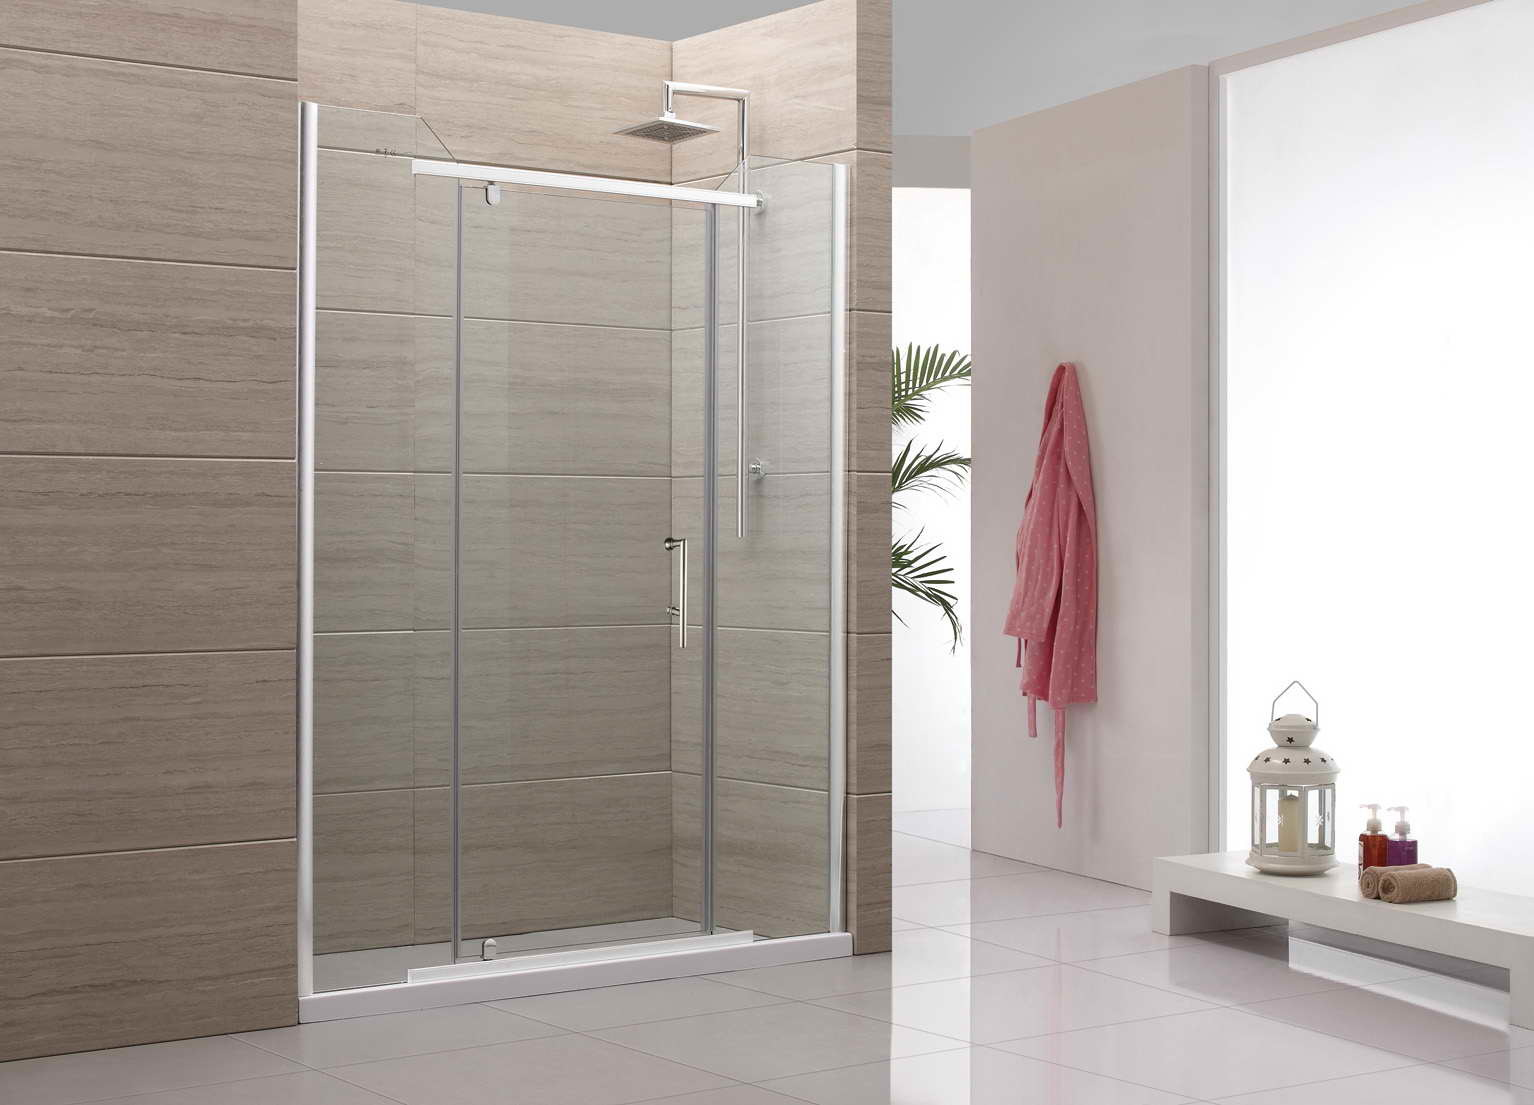 China Sliding Shower Door Rsh R 356 10 China Sliding Shower Door Bath And Shower Combinations